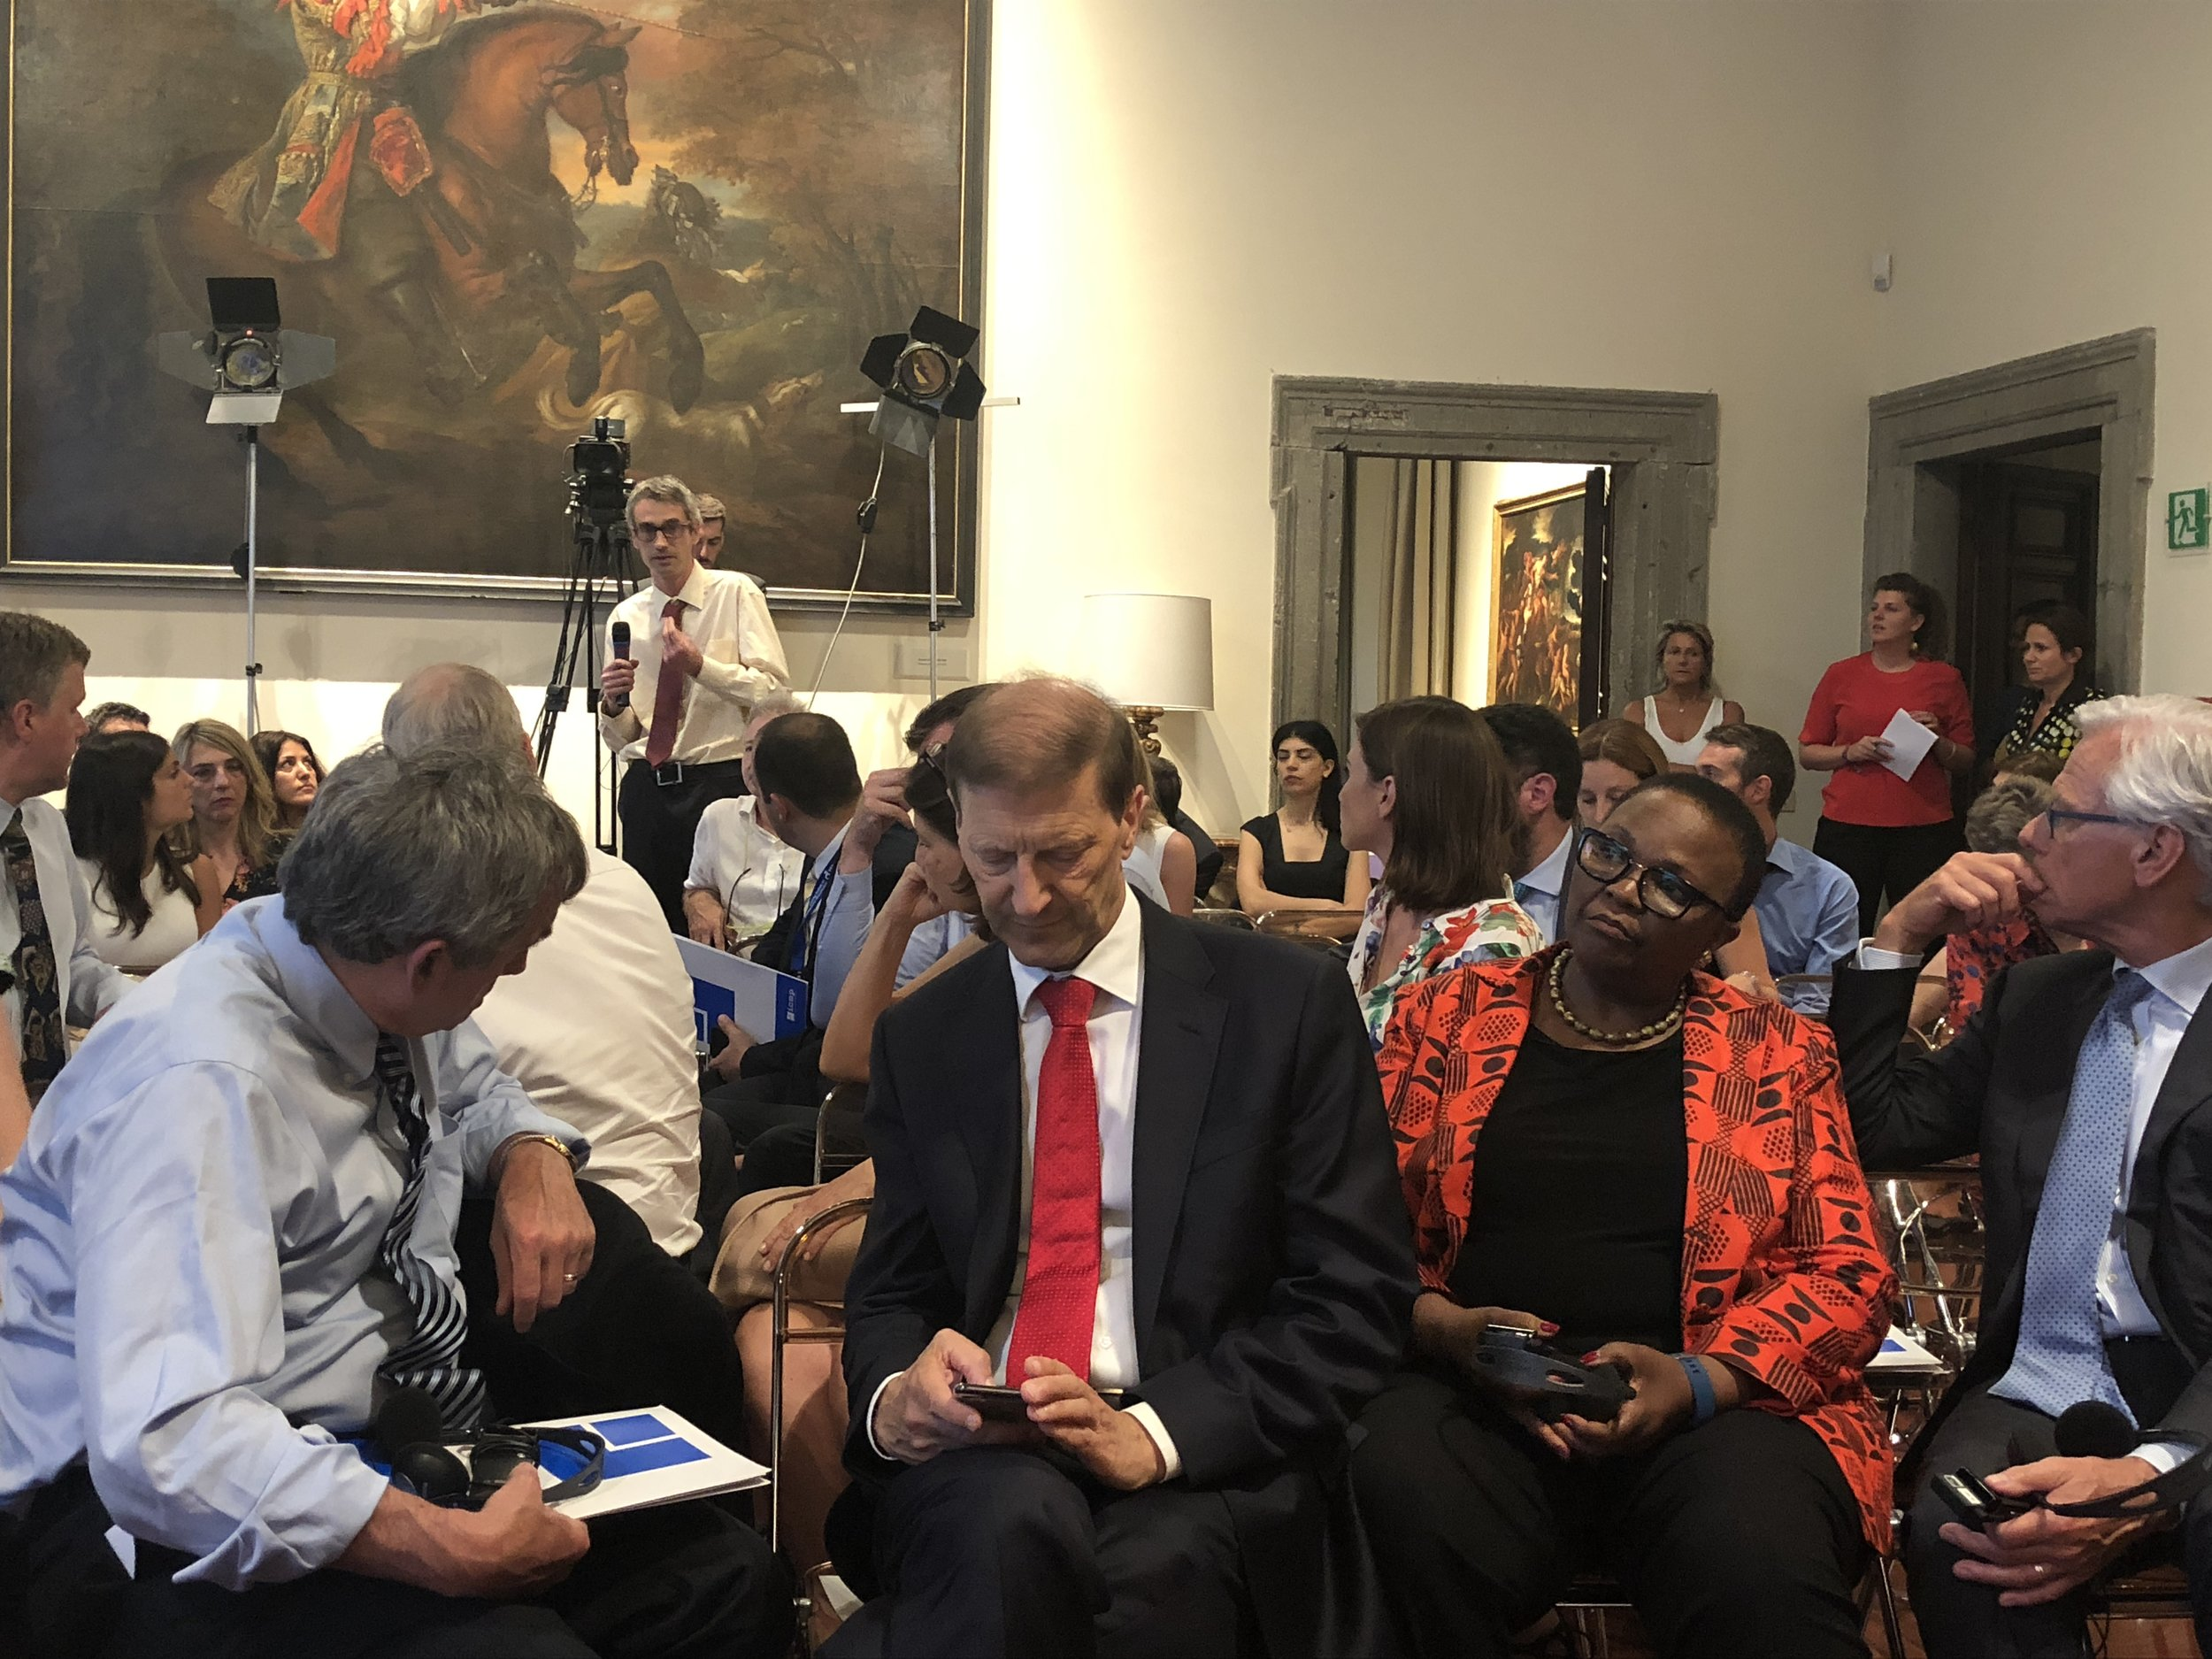 The reverse shot: (L-R) American Ambassador Thomas Miller; Swiss Ambassador Giancarlo Kessler, Judge Sanji Monageng, Knut Vollebaek. The Embassy of Switzerland, Rome. 11 June 2018.